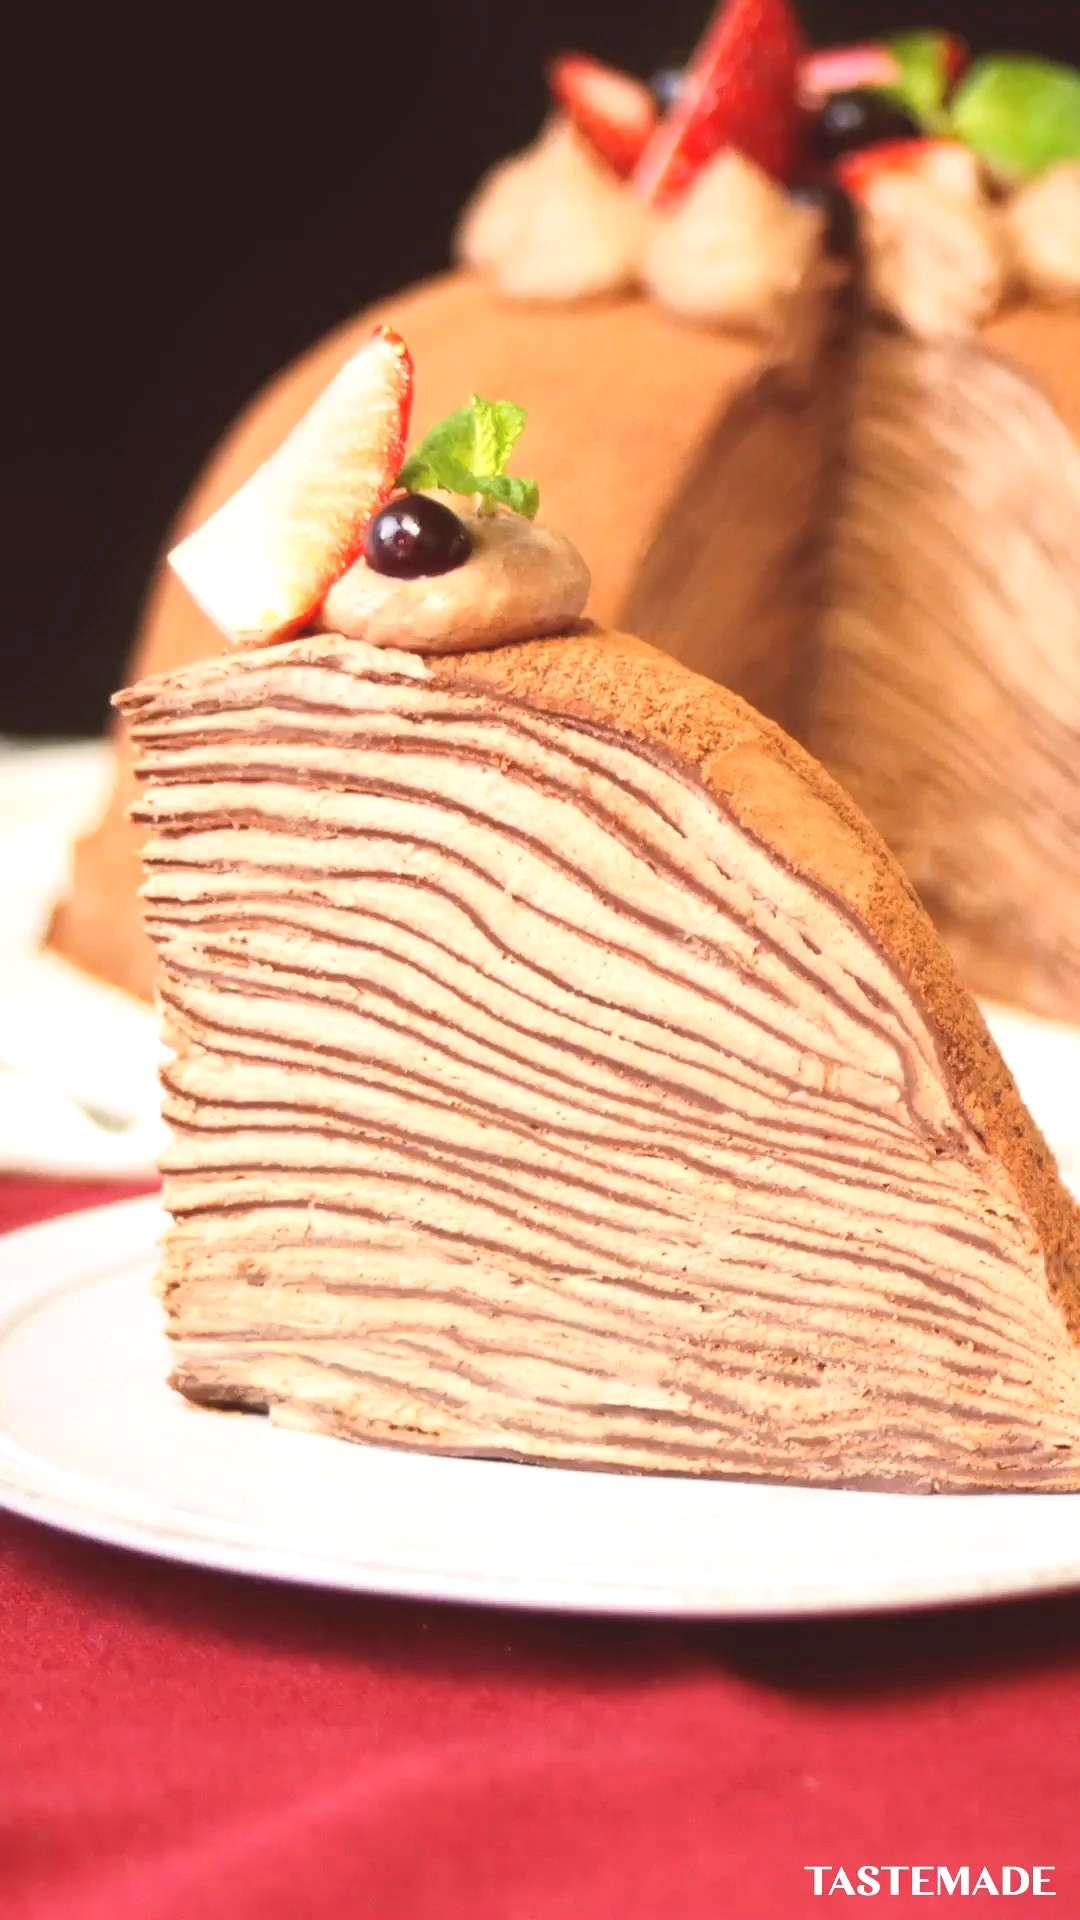 No-Bake Chocolate Ganache Cake Chocolate lovers, this no-bake, layered crepe cake is for you.